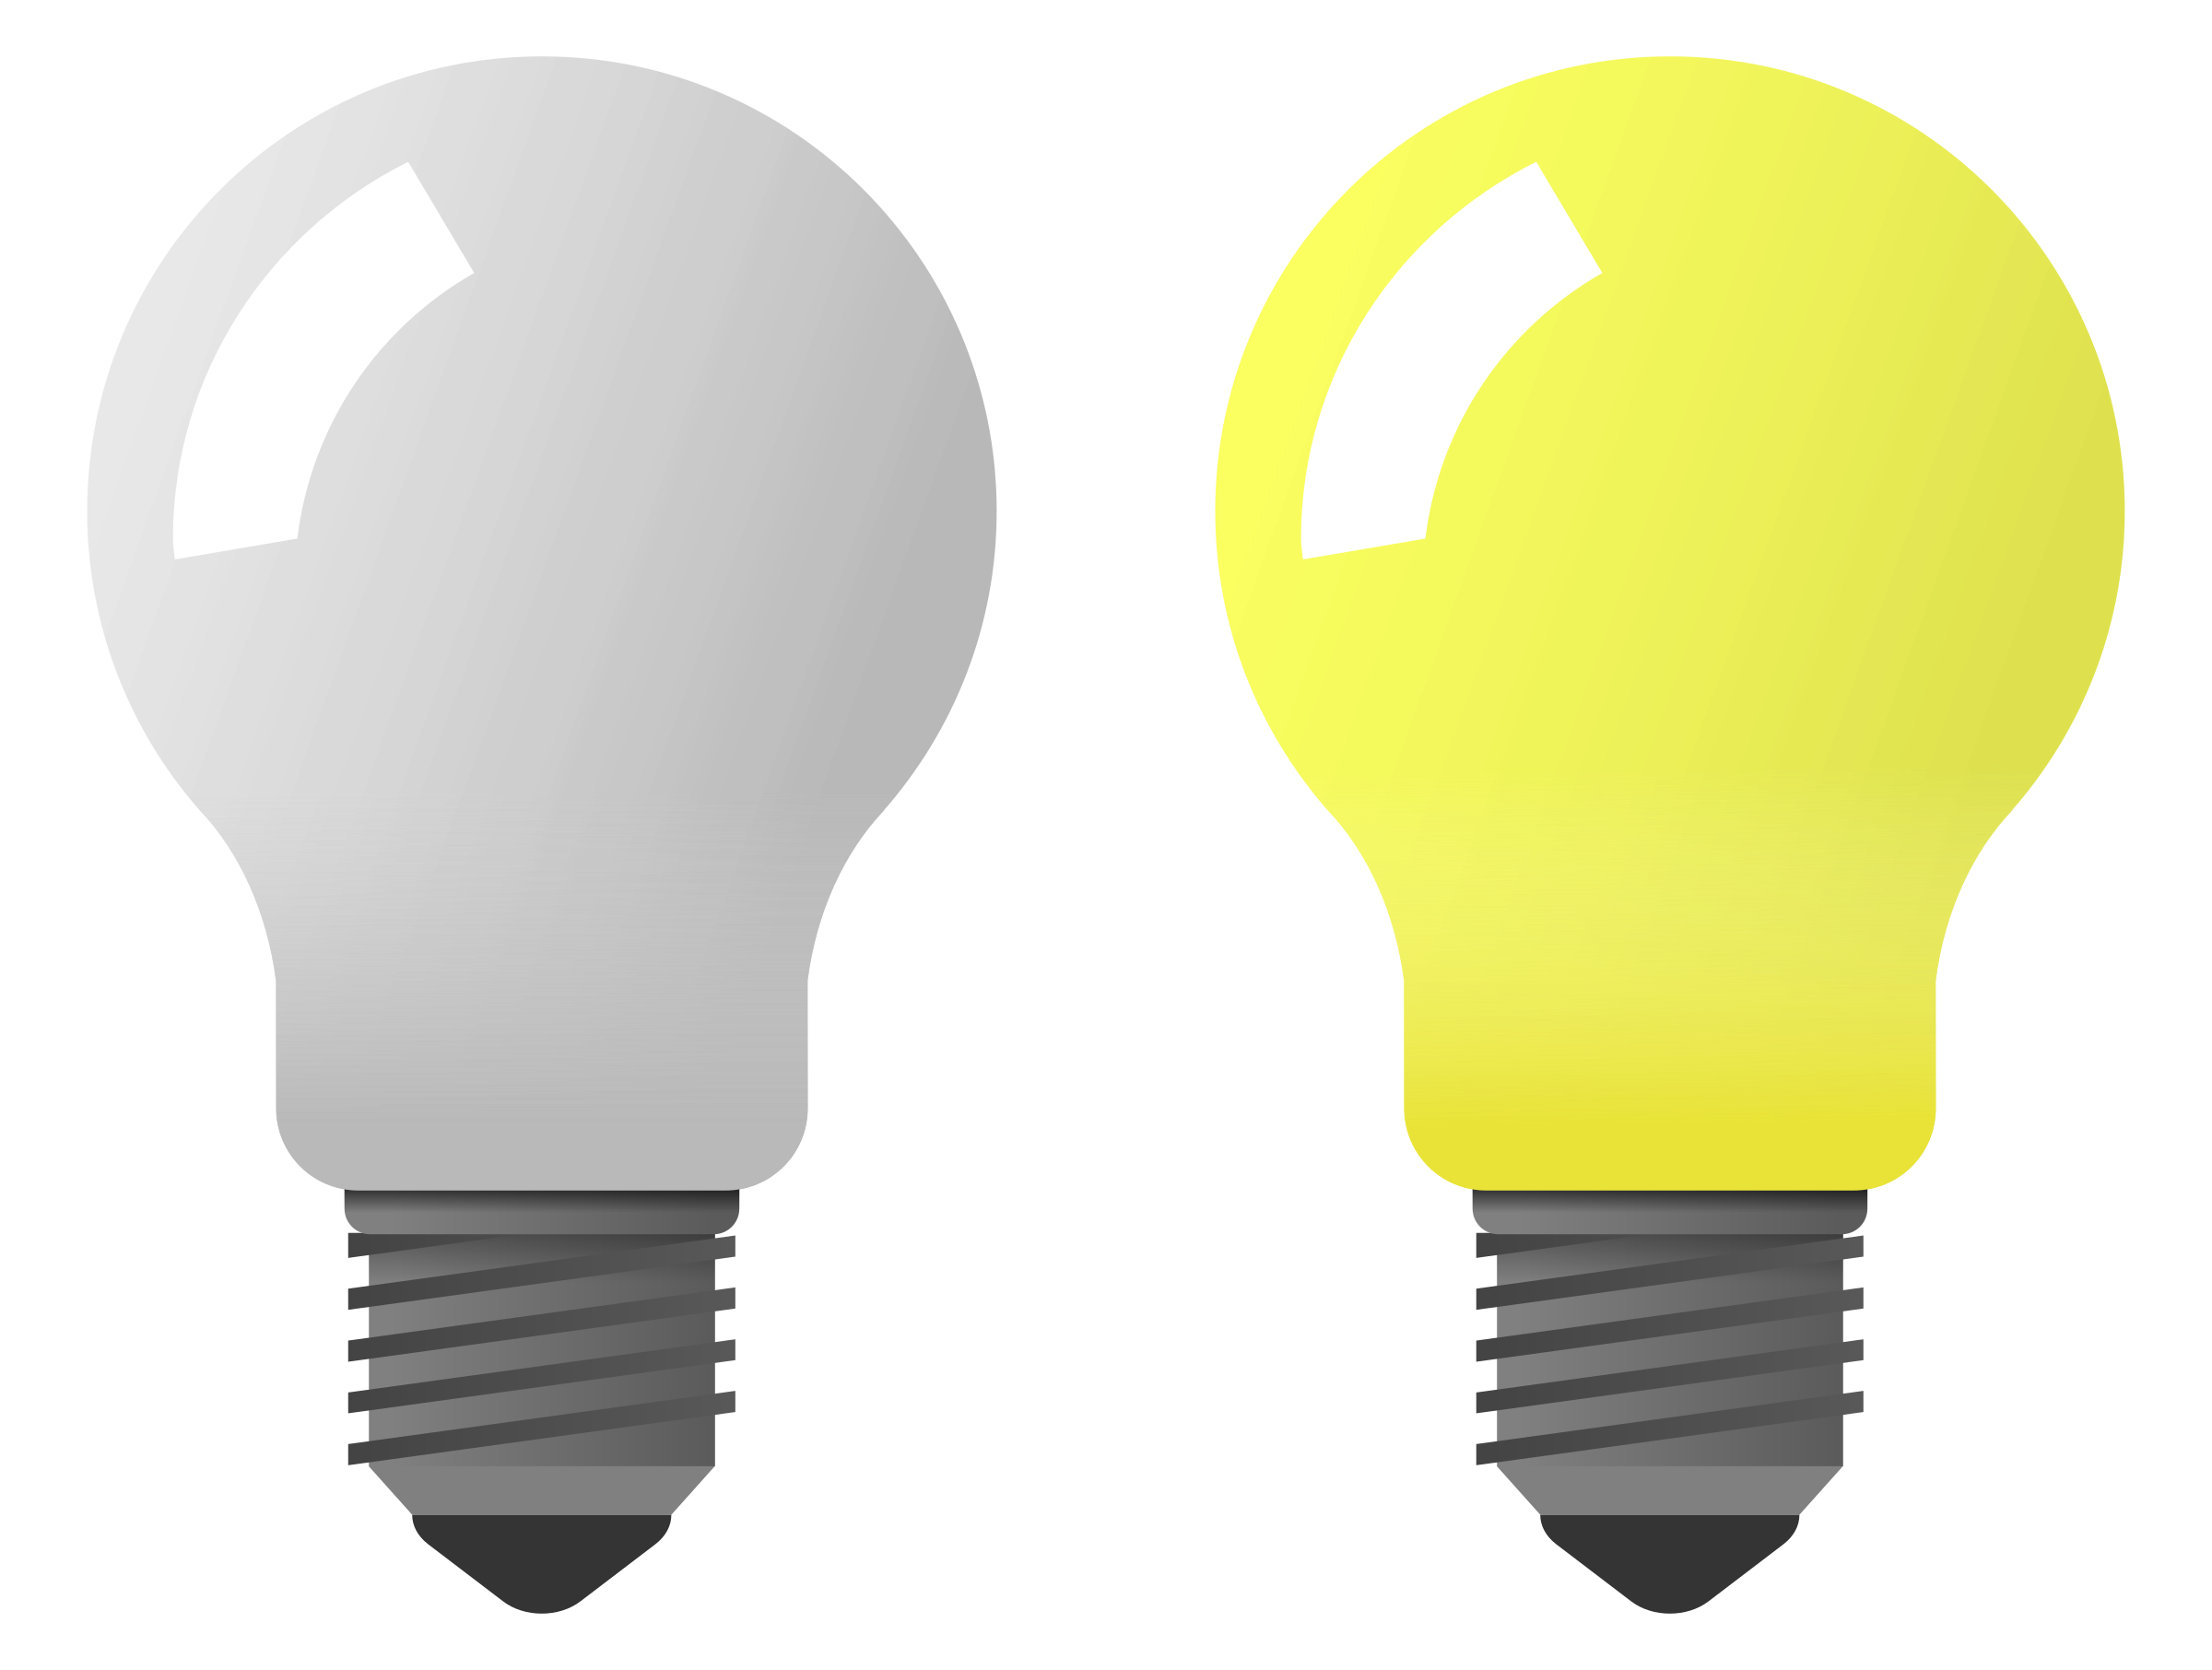 Light bulb on off png. Icons free and downloads